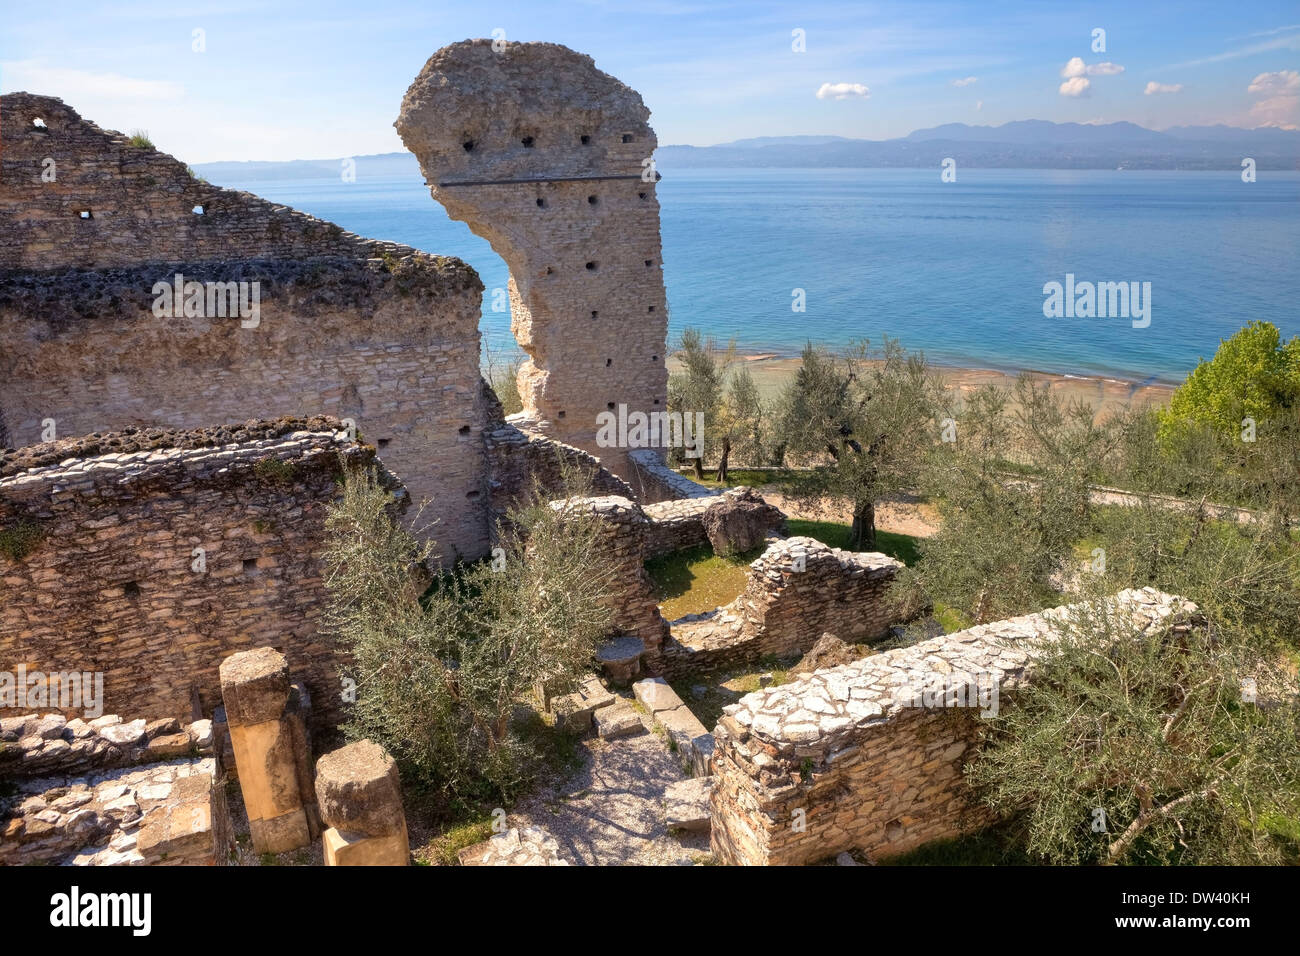 Grottoes of Catullus, Sirmione - Stock Image